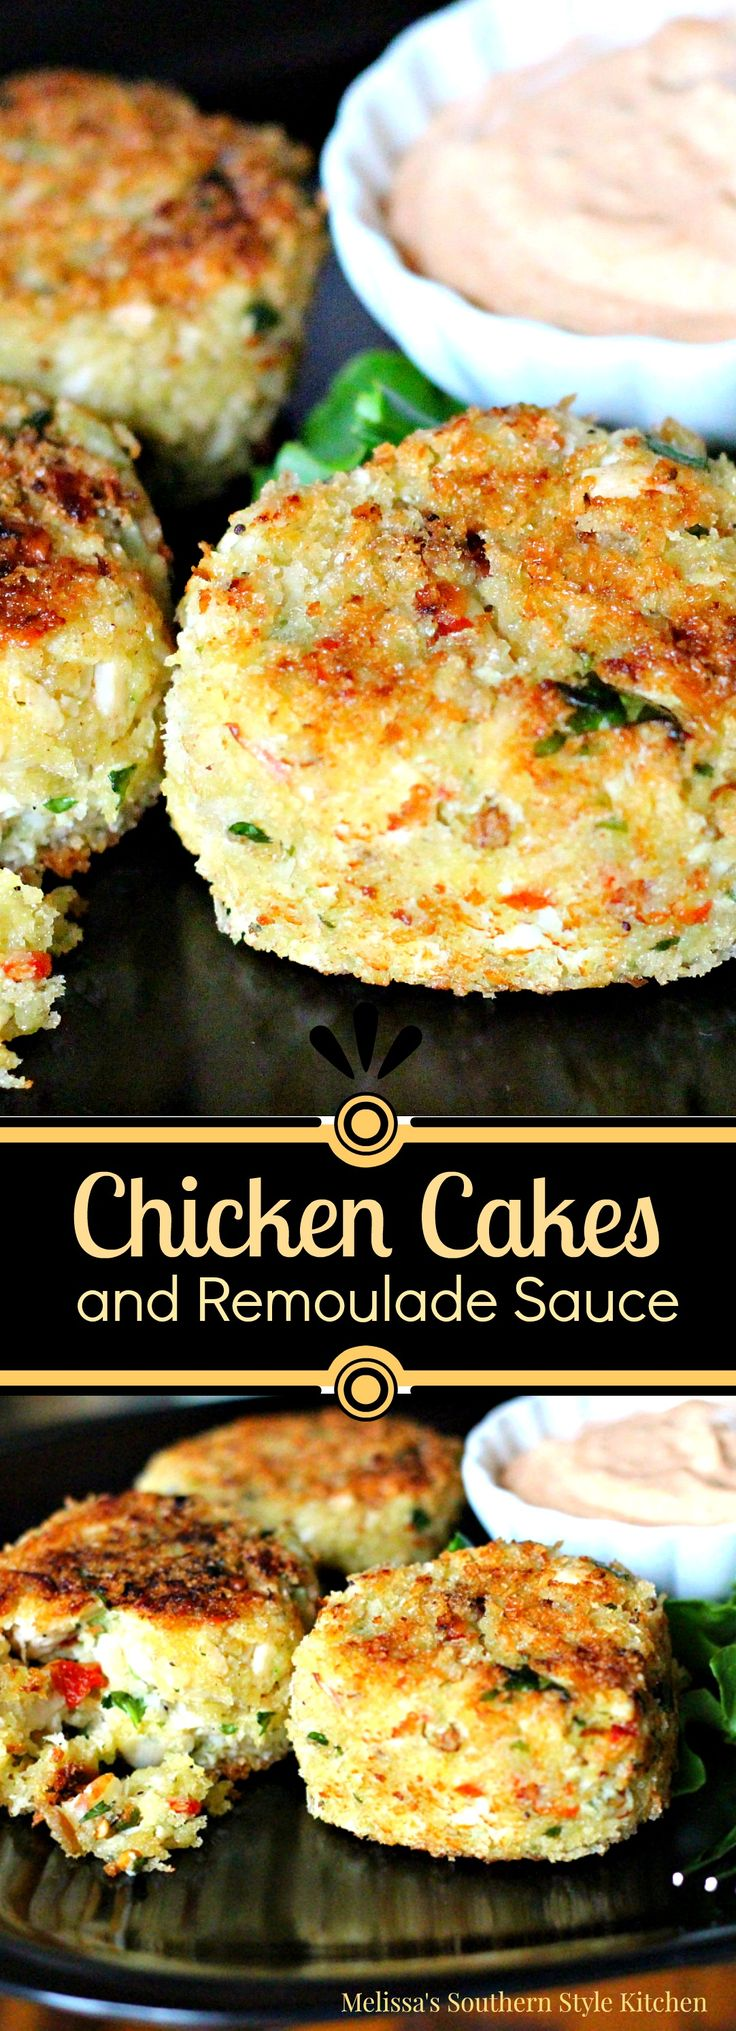 Chicken Cakes And Remoulade Sauce                                                                                                                                                                                 More